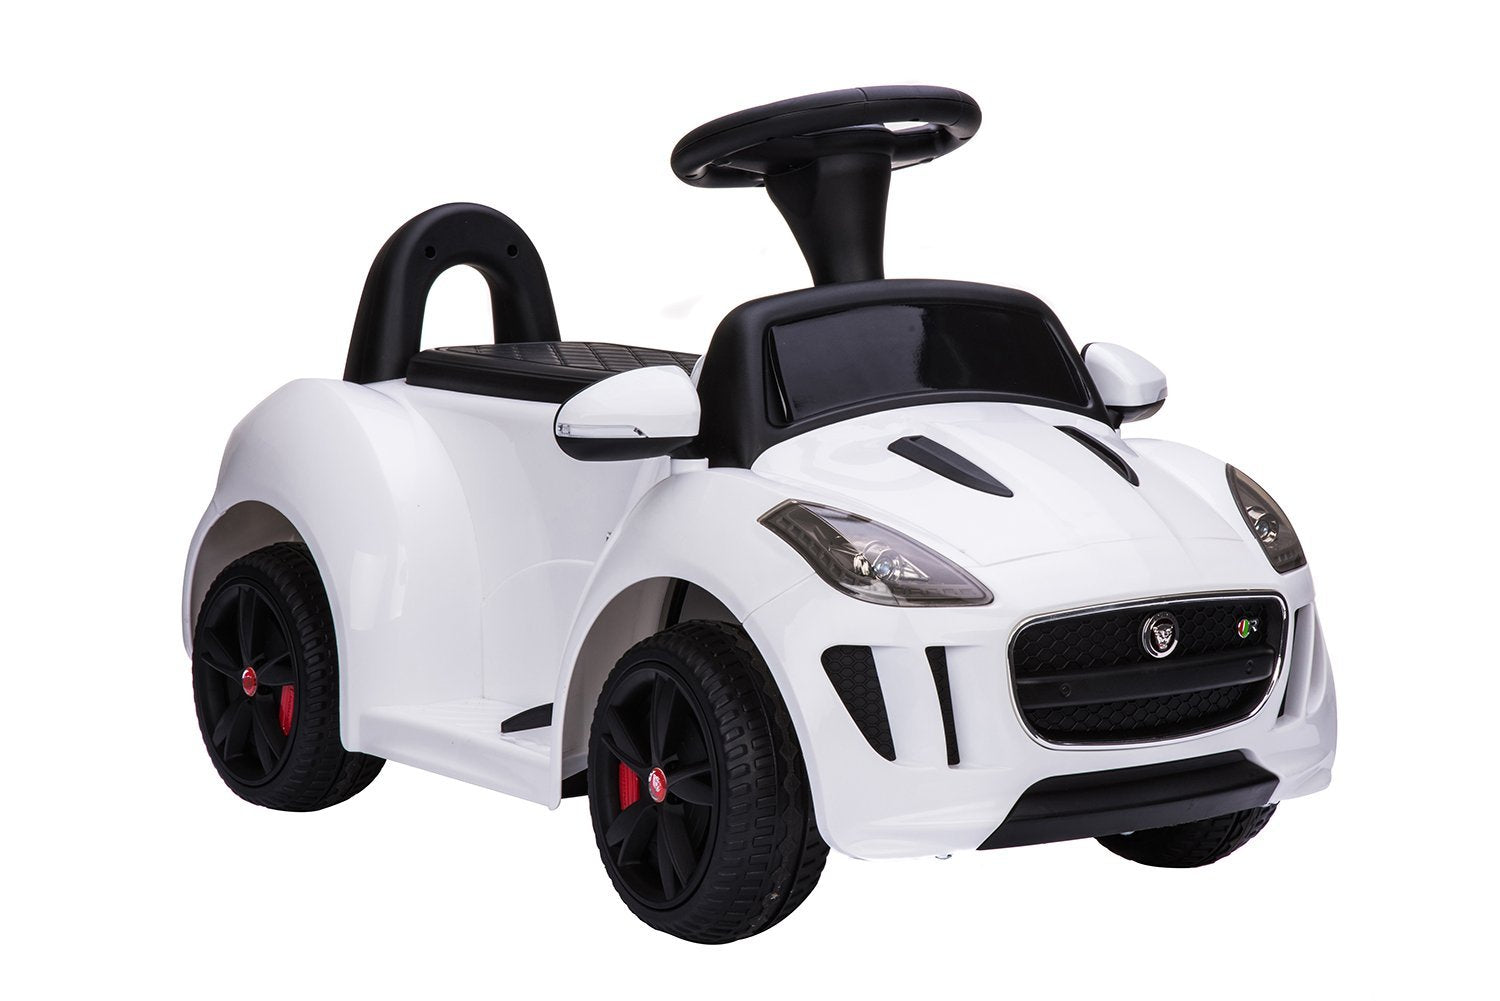 Jaguar Push Car 6v White - Buy Online on My Tiny Wheels